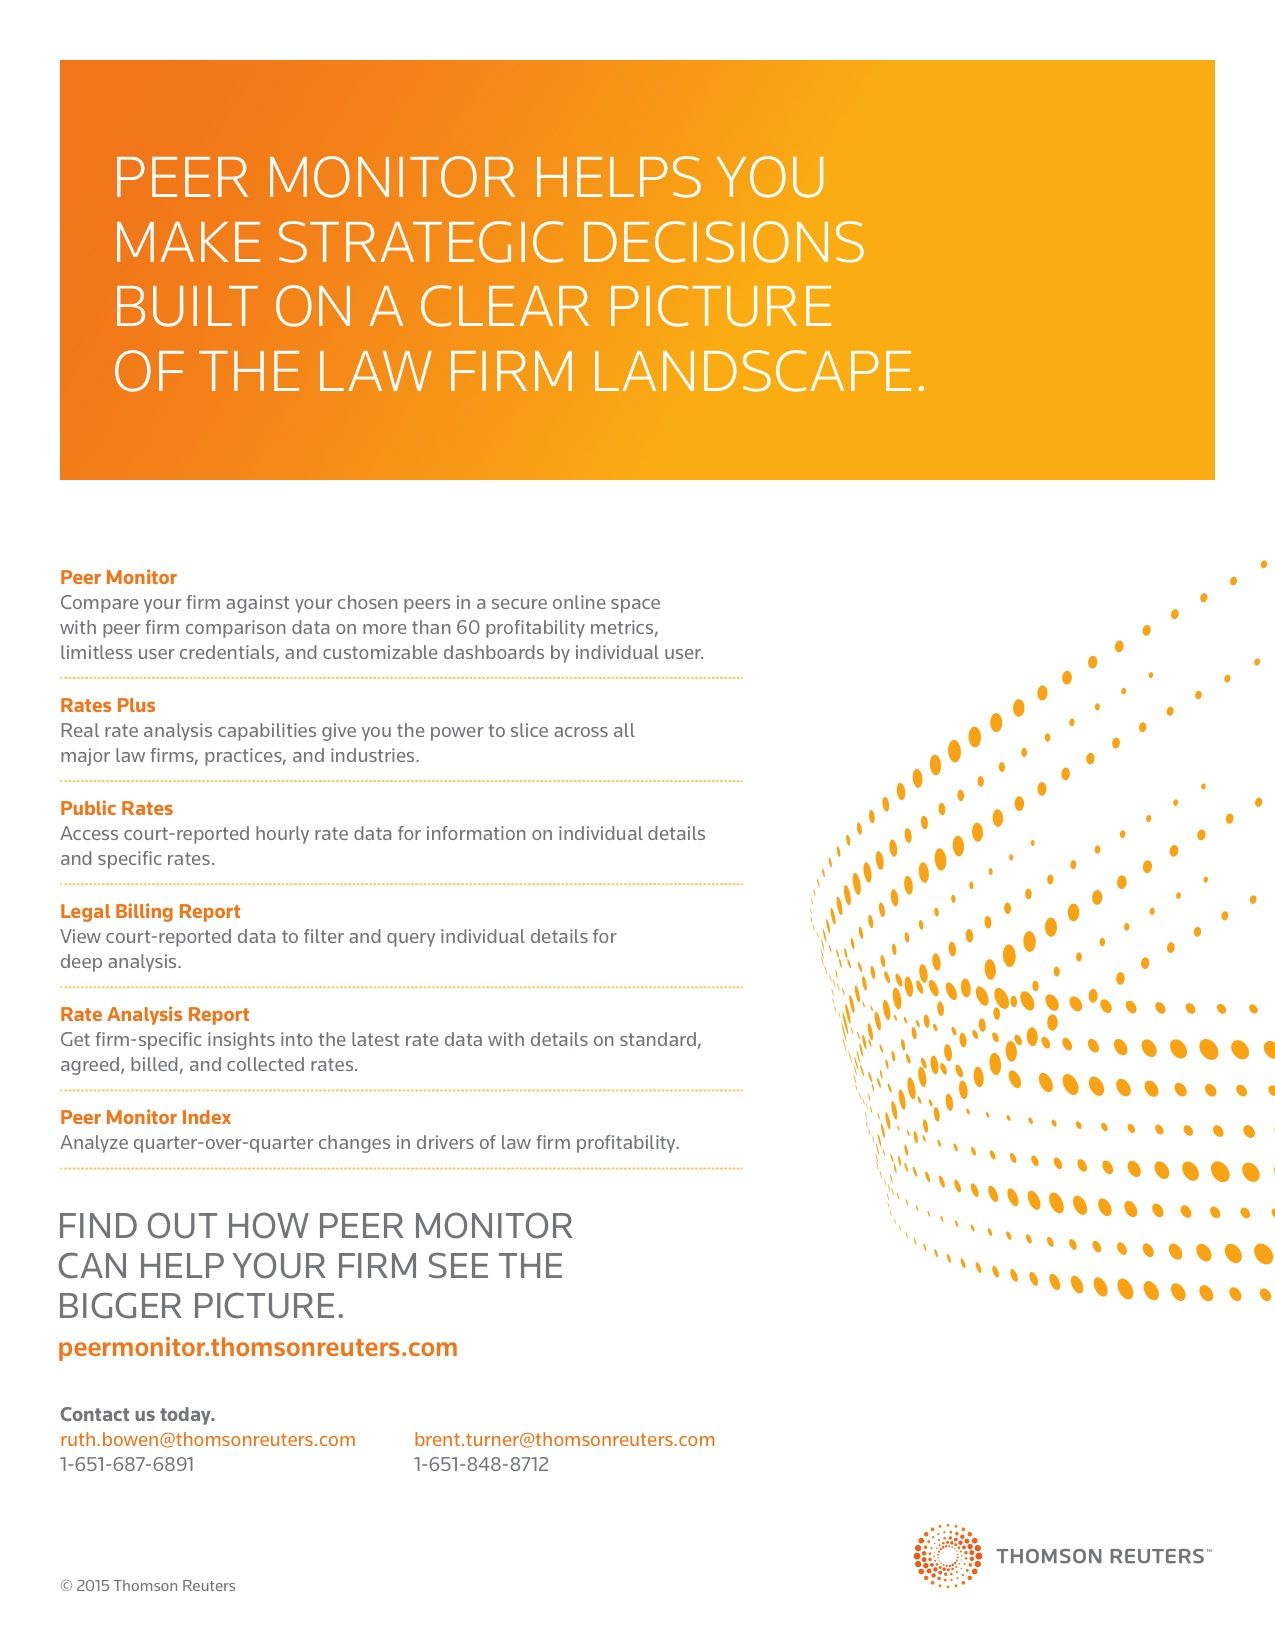 Thomson Reuters Peer Monitor Sell Sheet - Dale Gregory Anderson